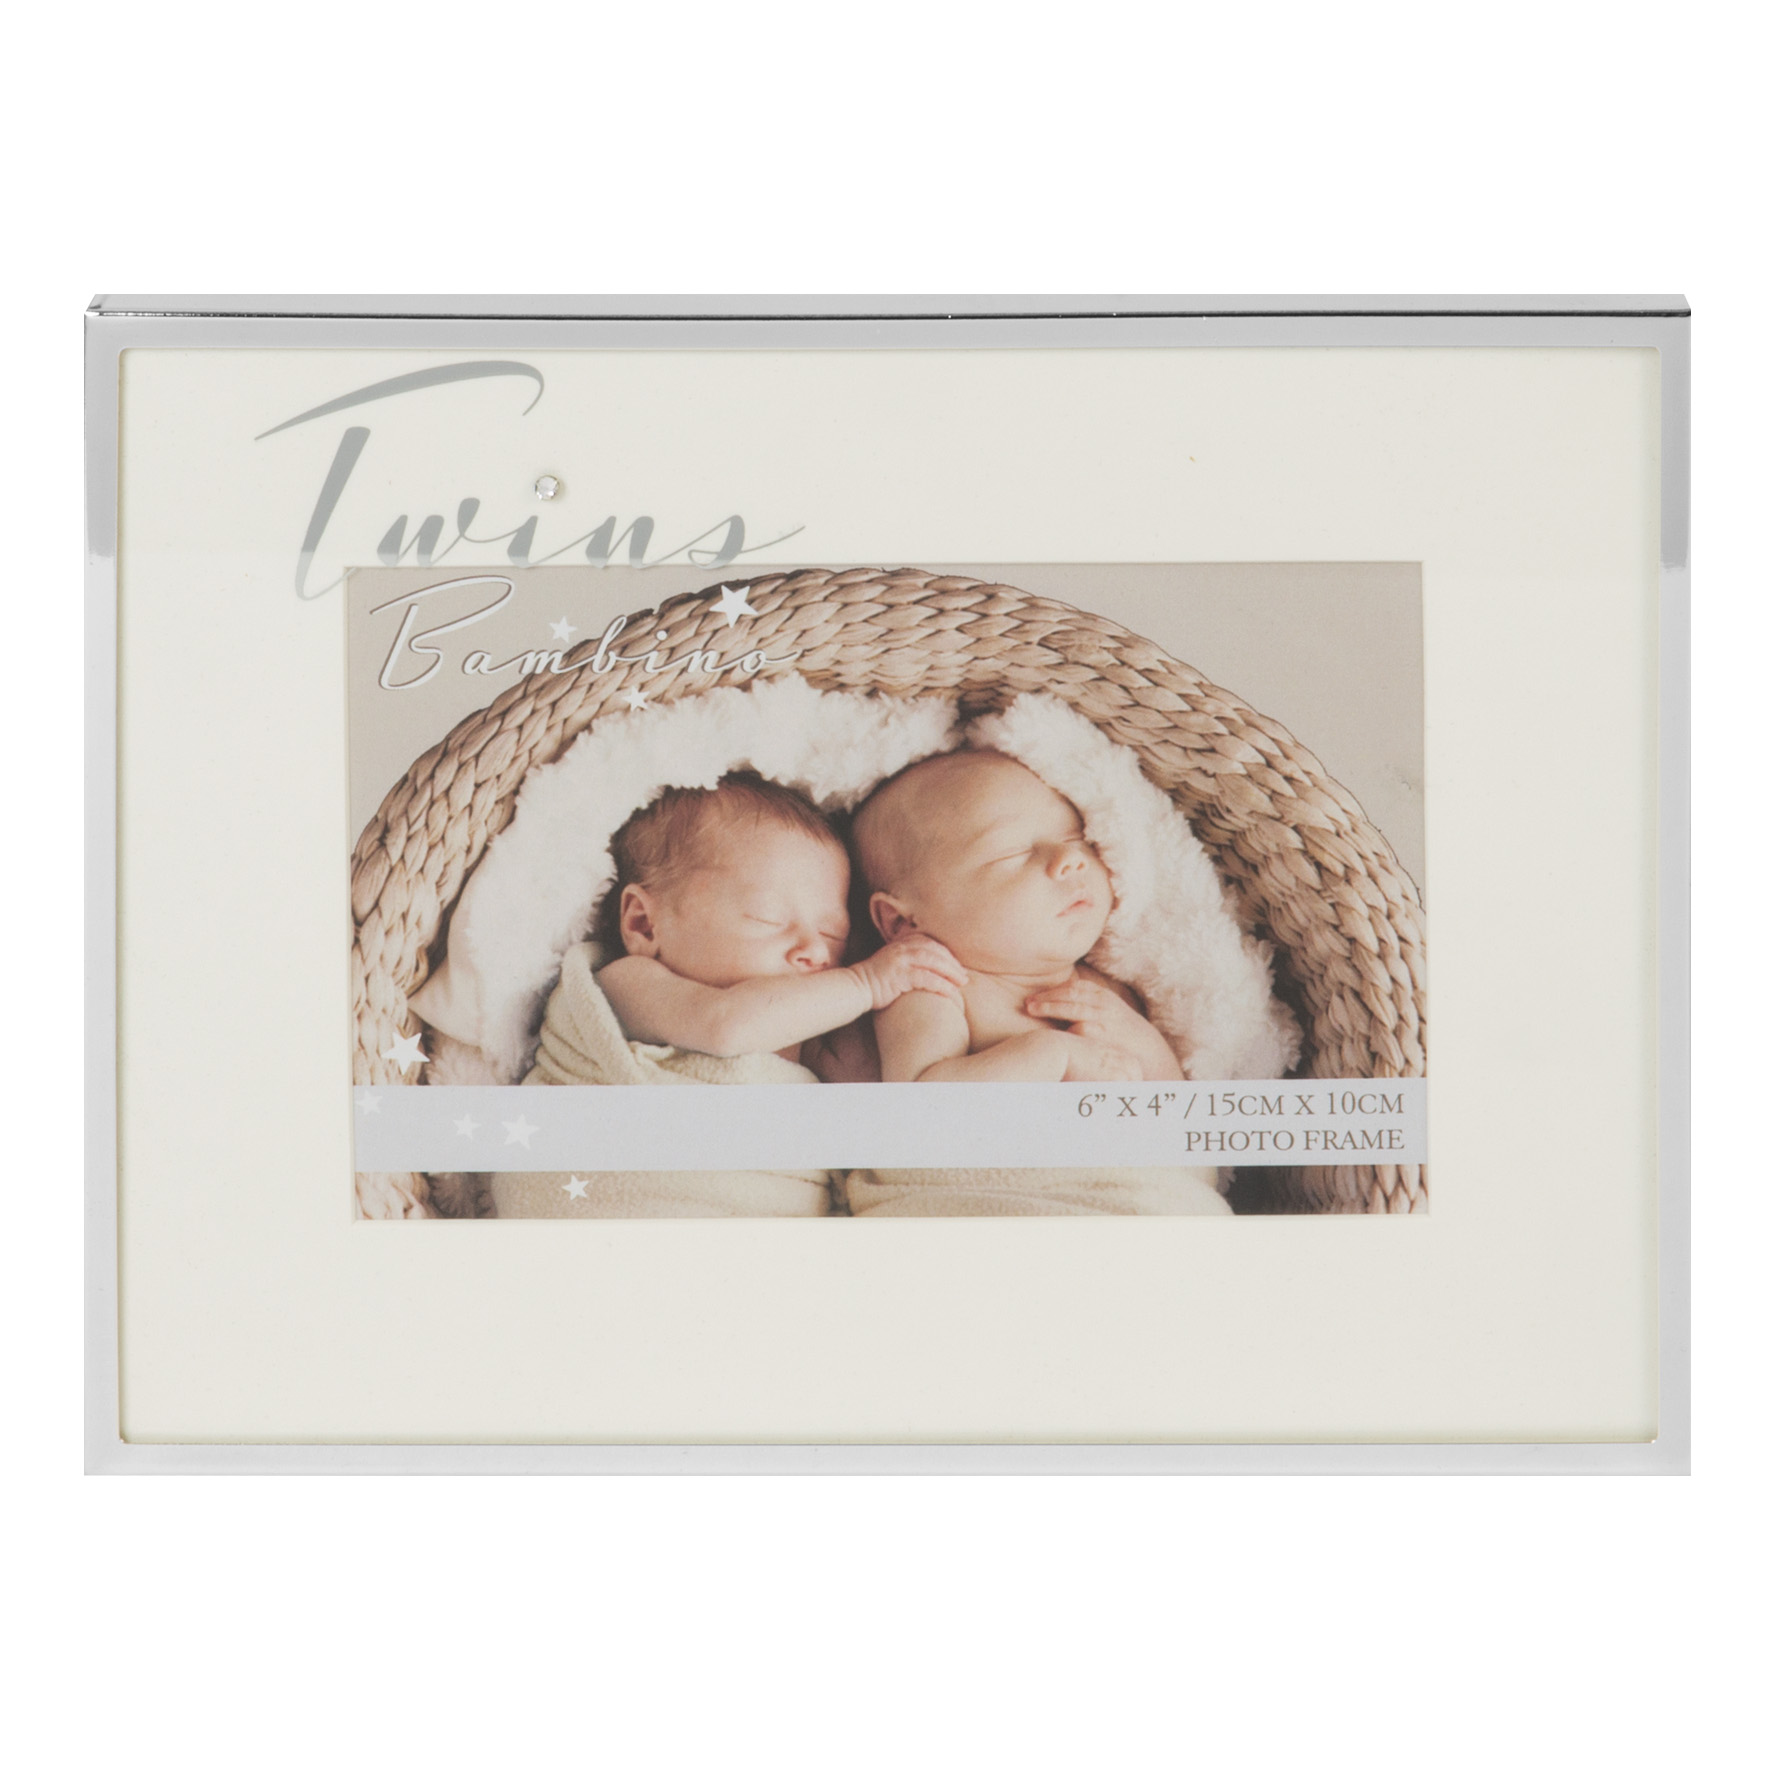 781ba53a08da Silverplated Photo Frame - Twins 6